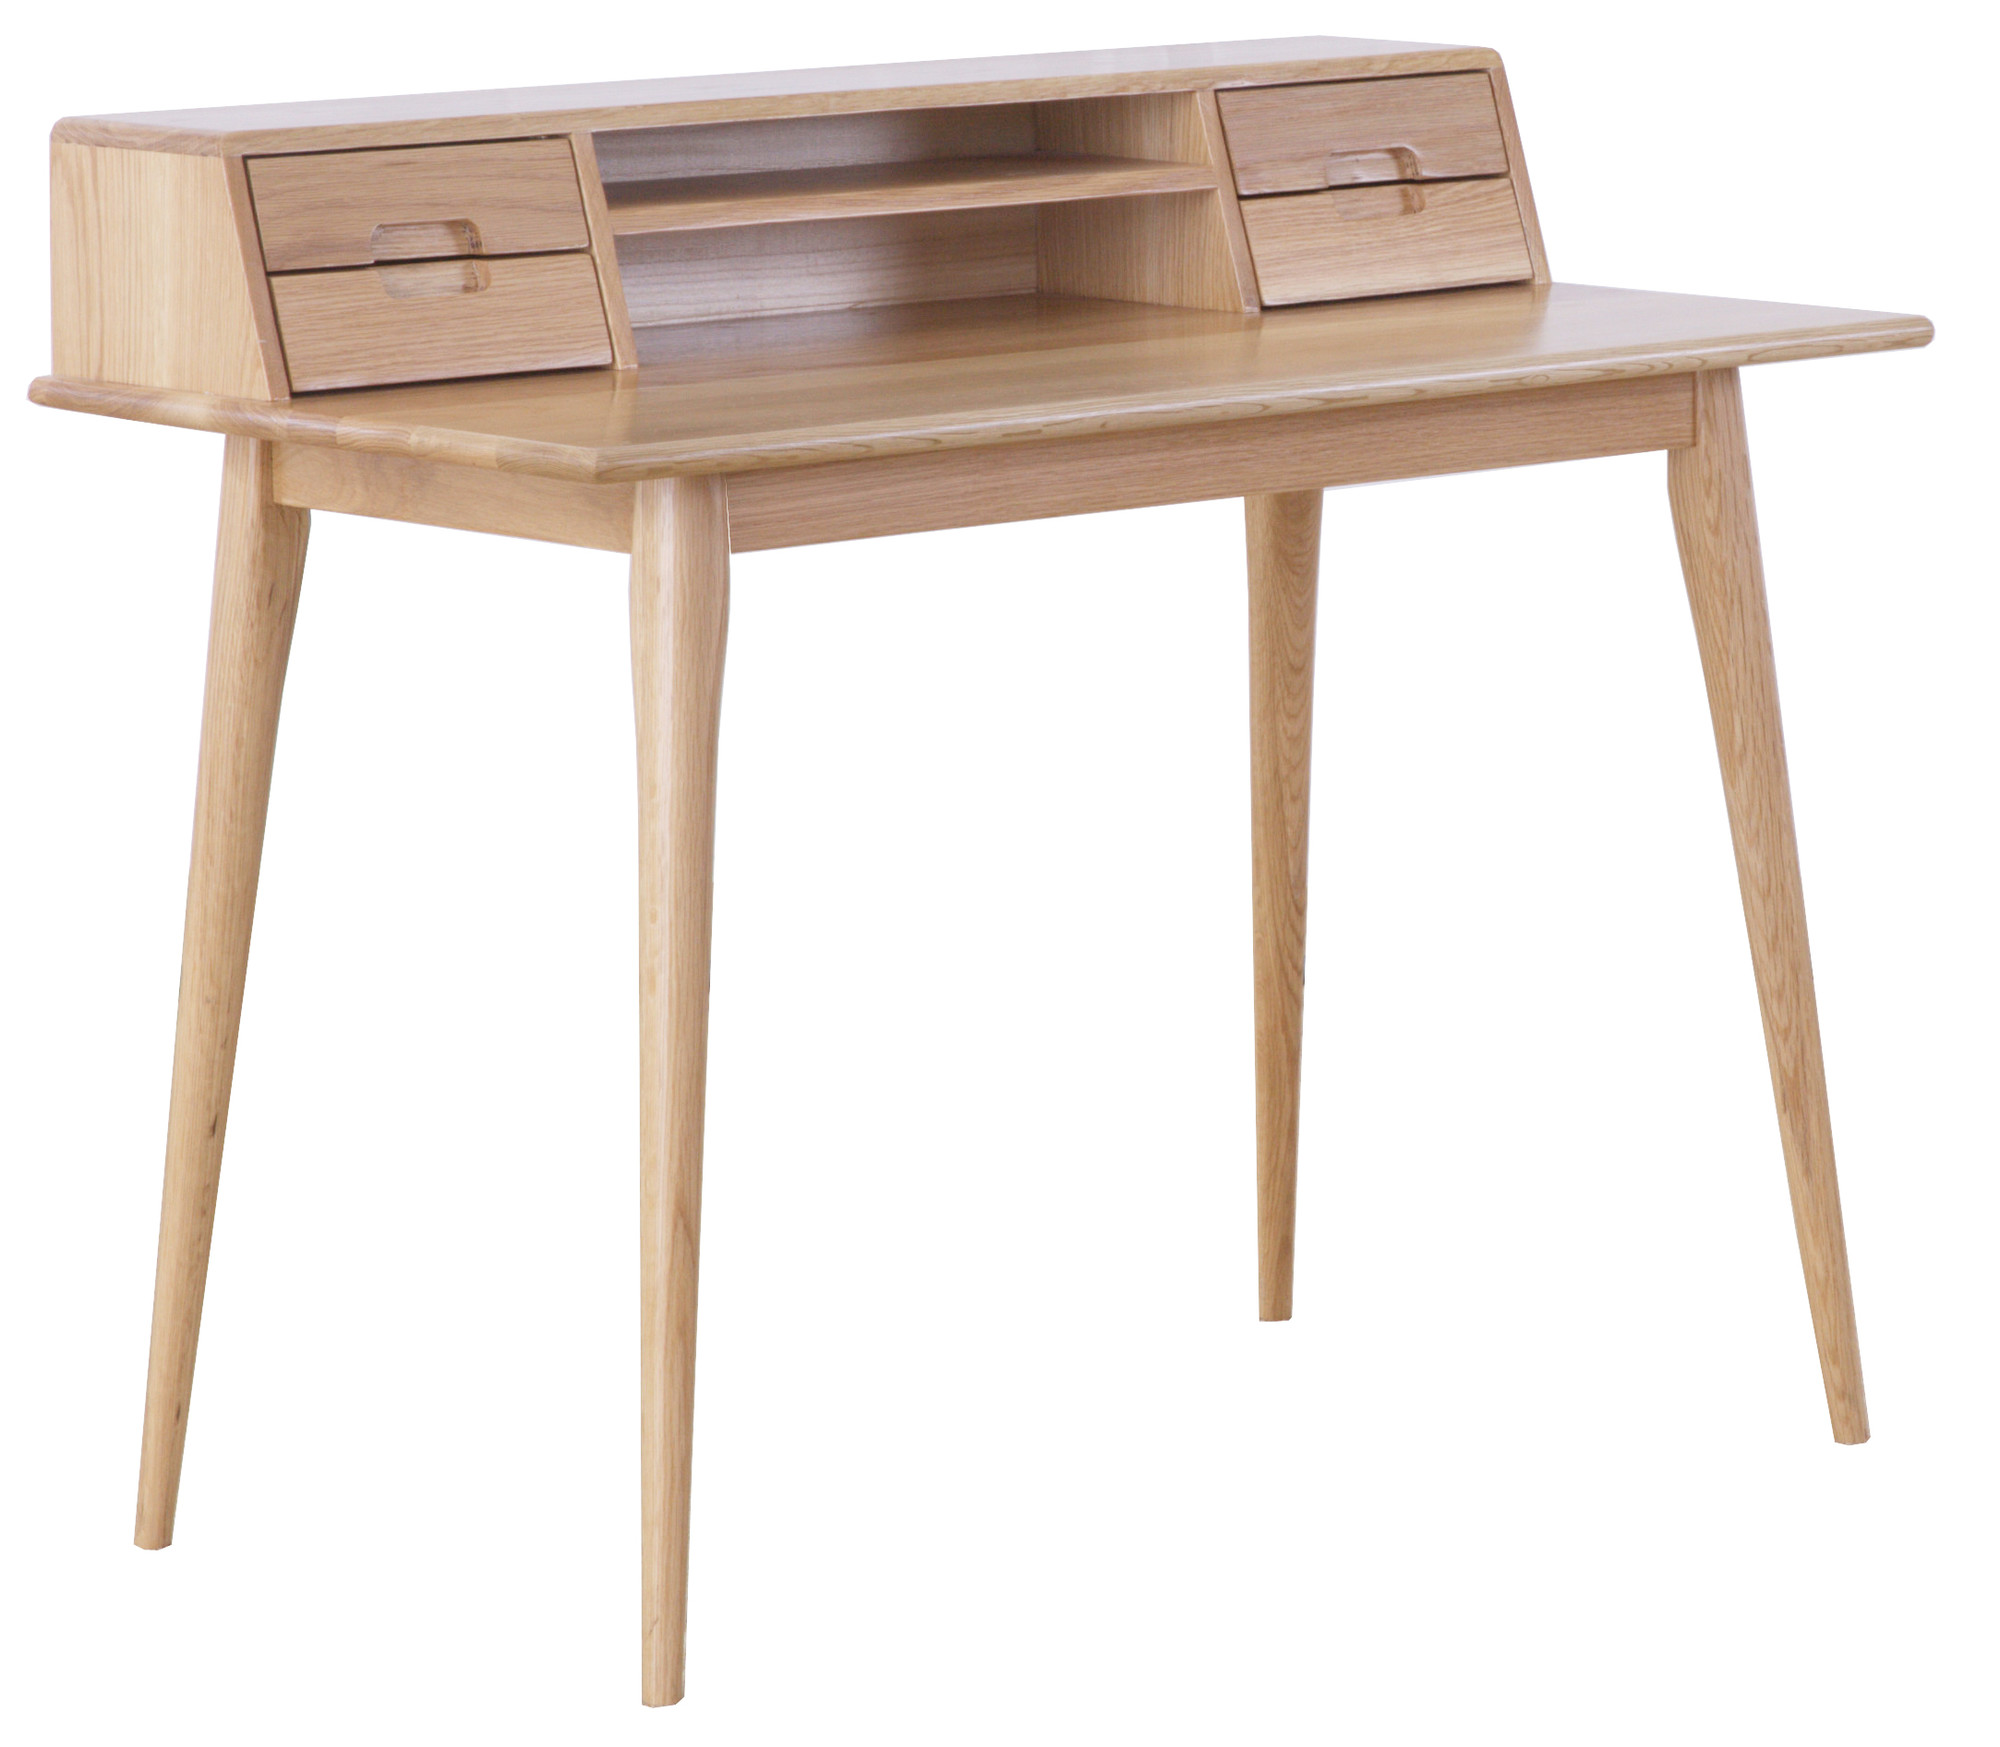 NEW Oscar Oak Scandinavian Style Desk